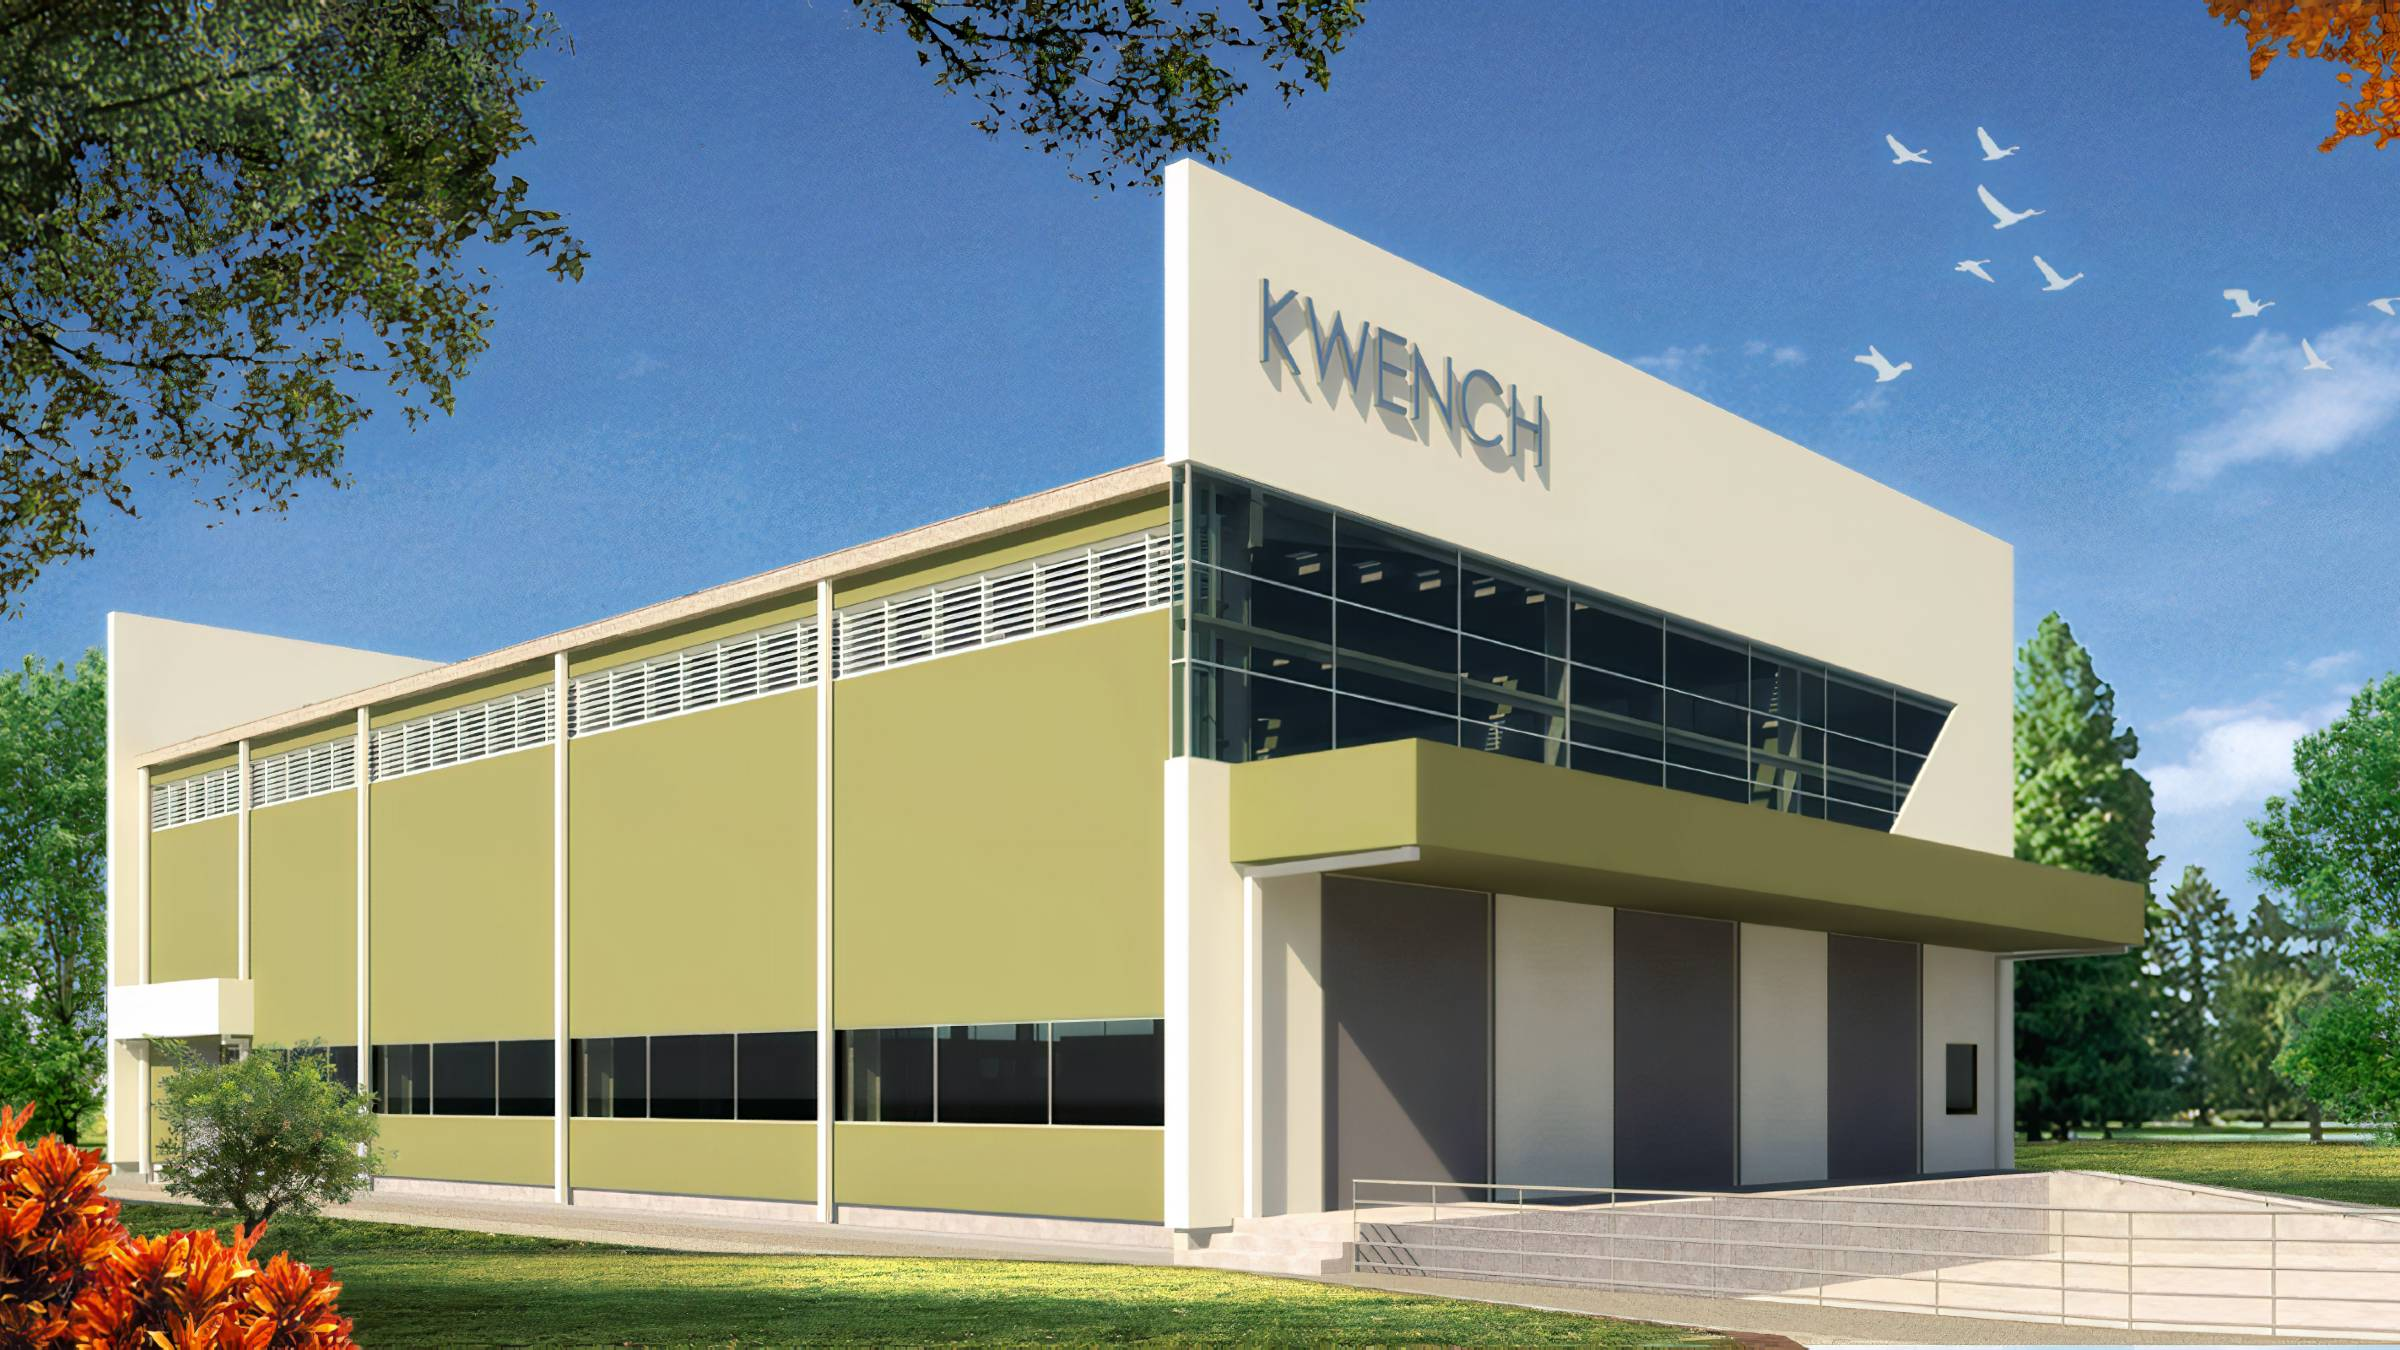 Kwench Plant Industrial Architecture street view